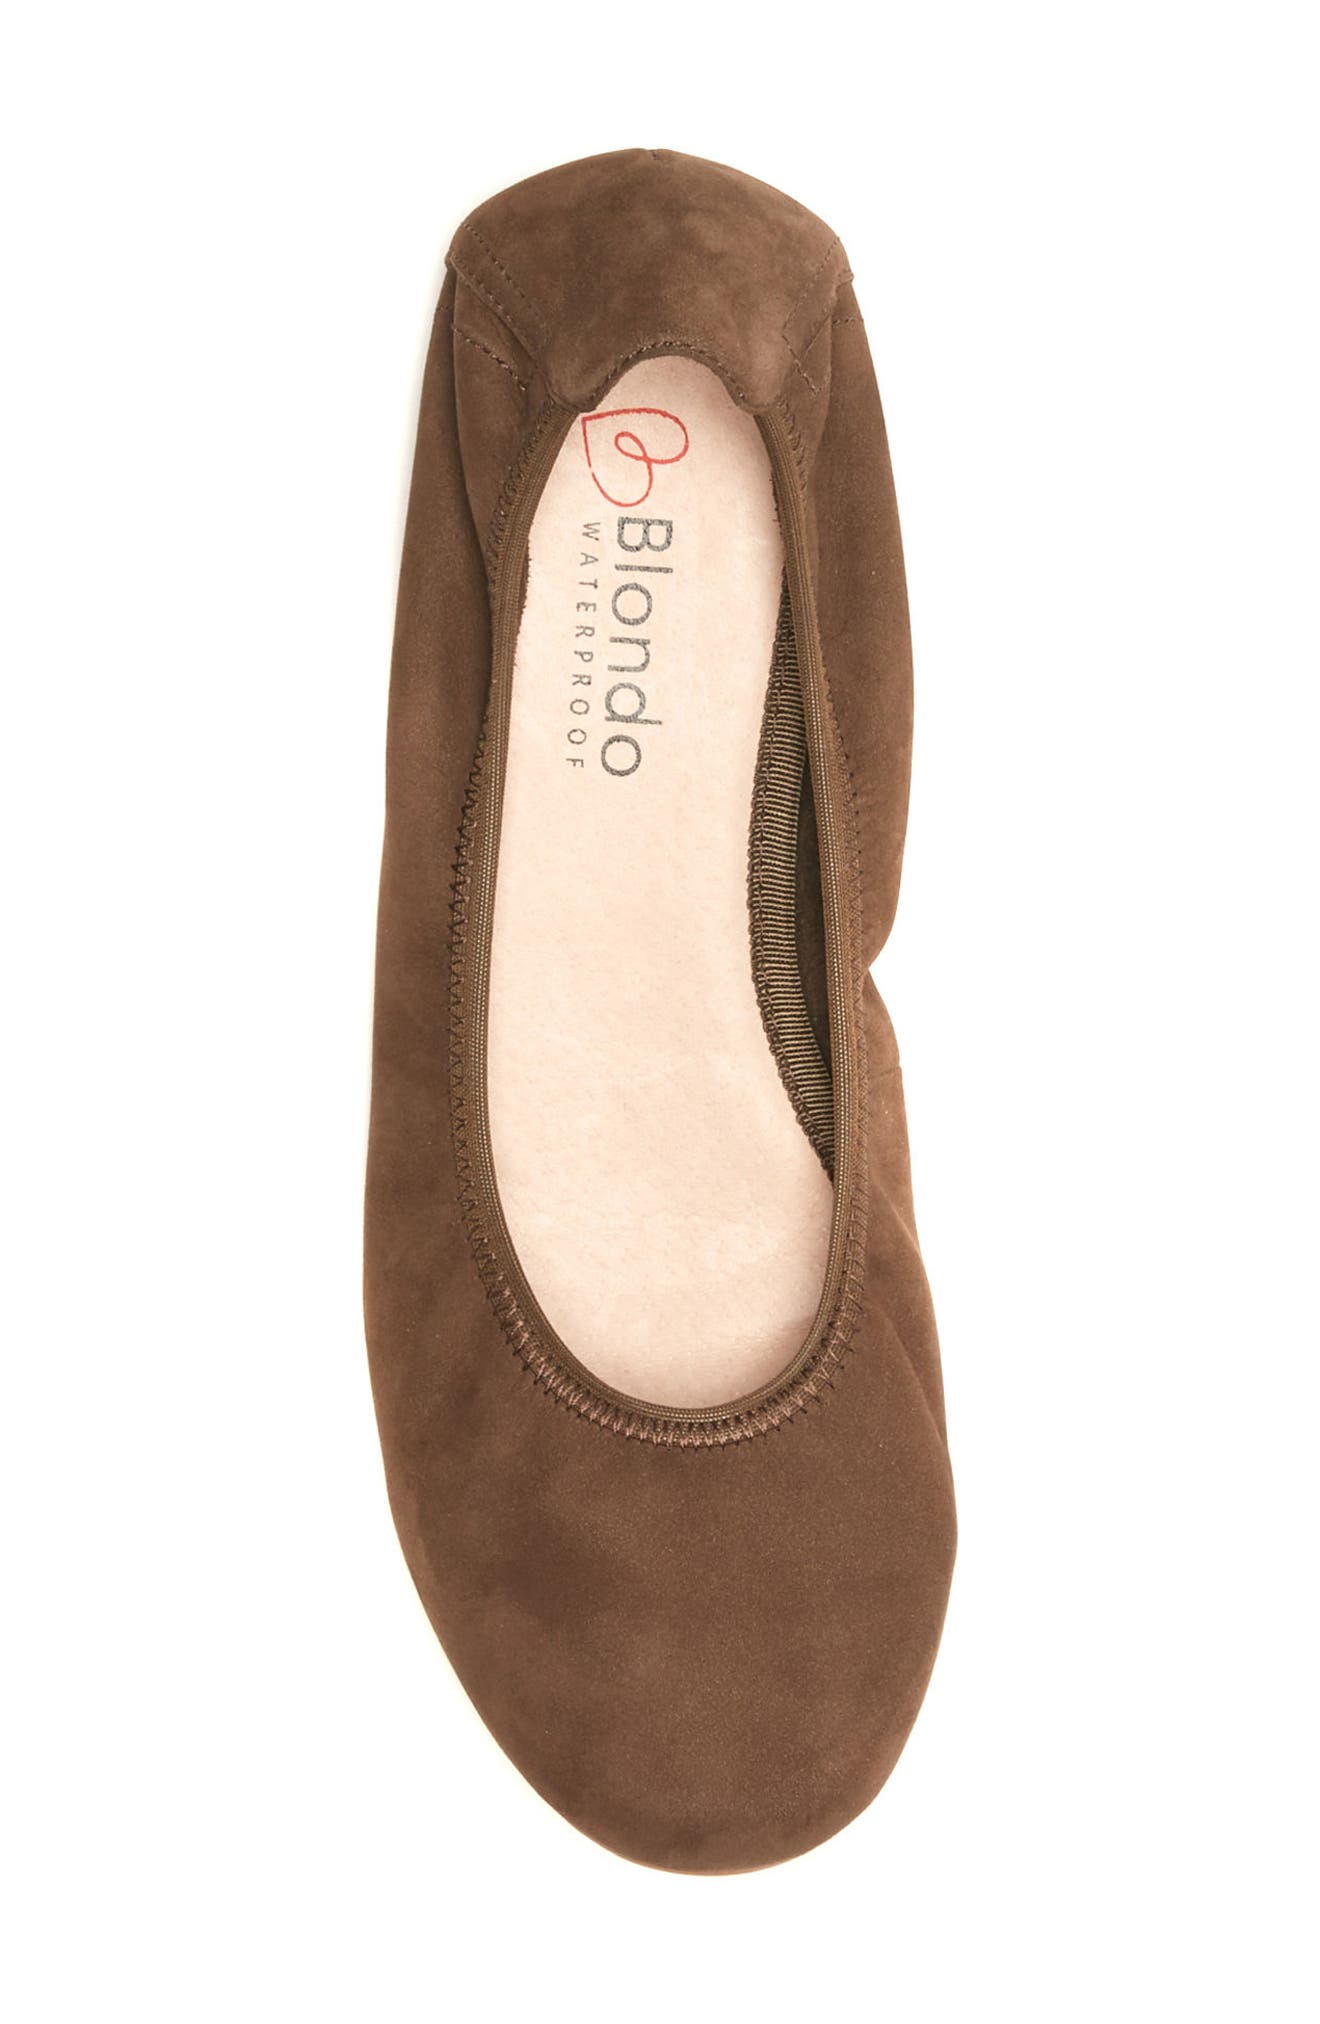 Becca Waterproof Flat,                             Alternate thumbnail 5, color,                             Taupe Nubuck Leather